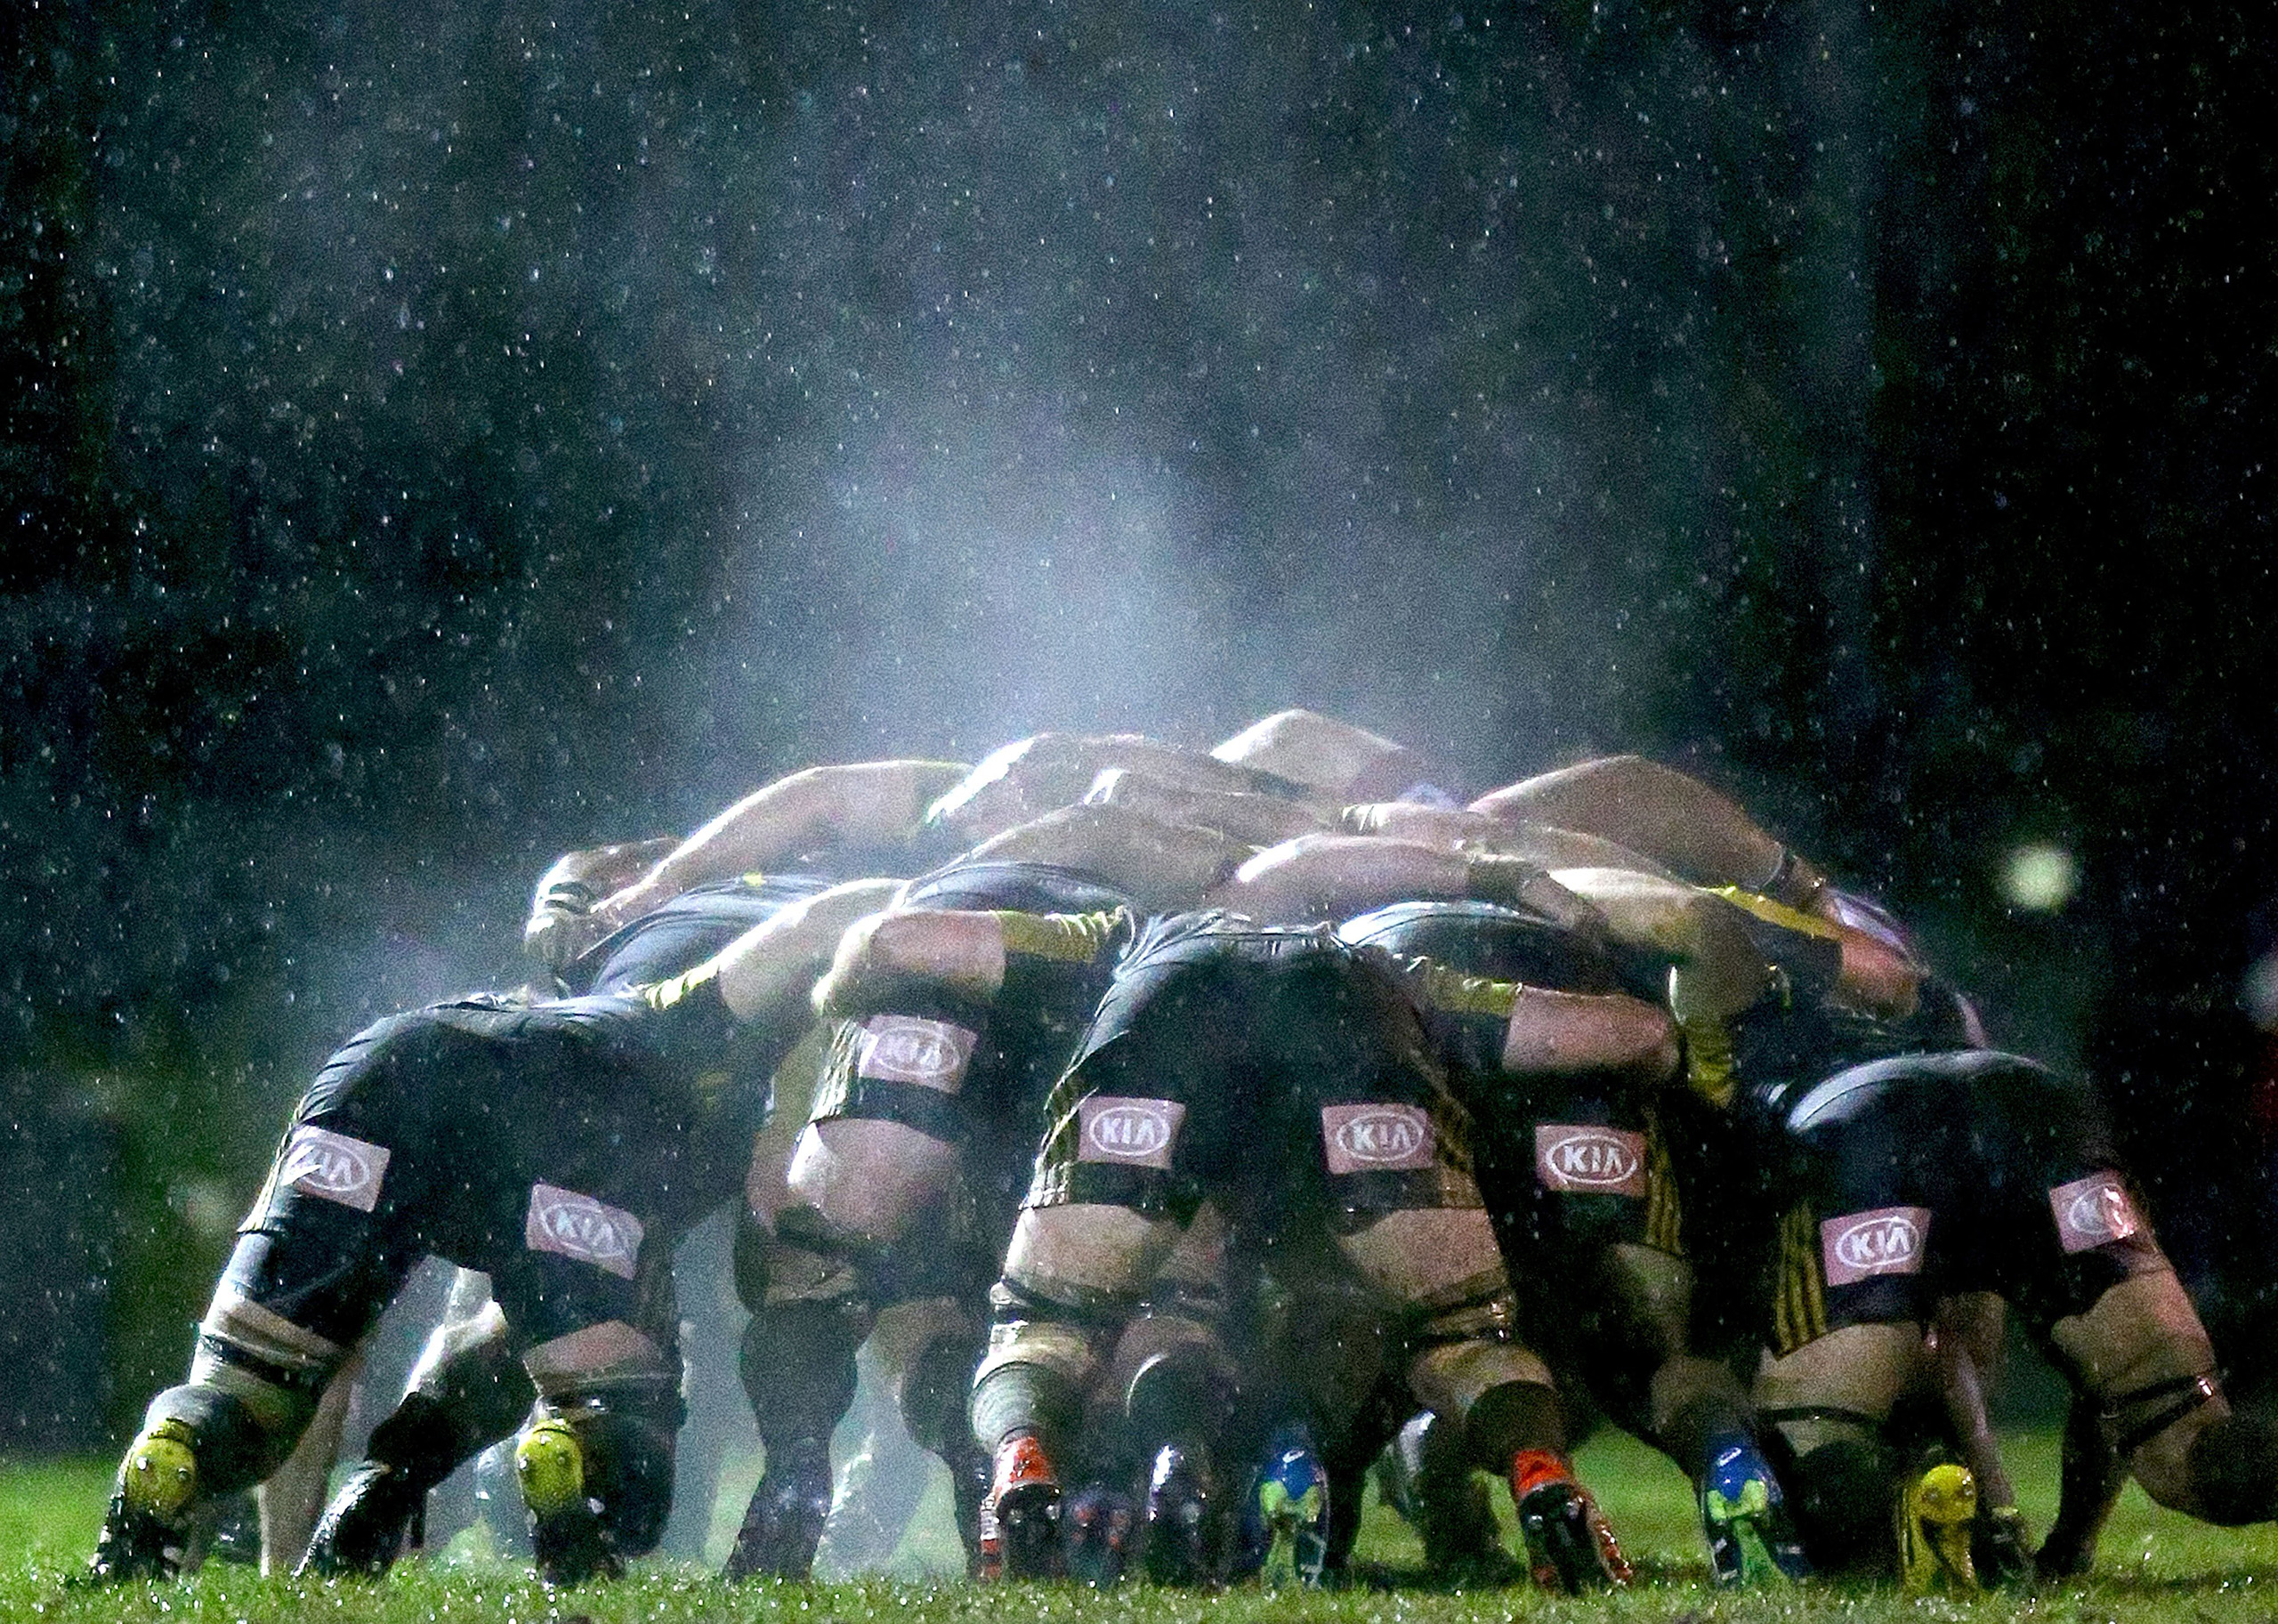 Steam rises from a scrum during the Super Rugby Exhibition match between the Rebels and the Hurricanes at Harlequins Rugby Club in Melbourne, Australia, on June 23, 2016.